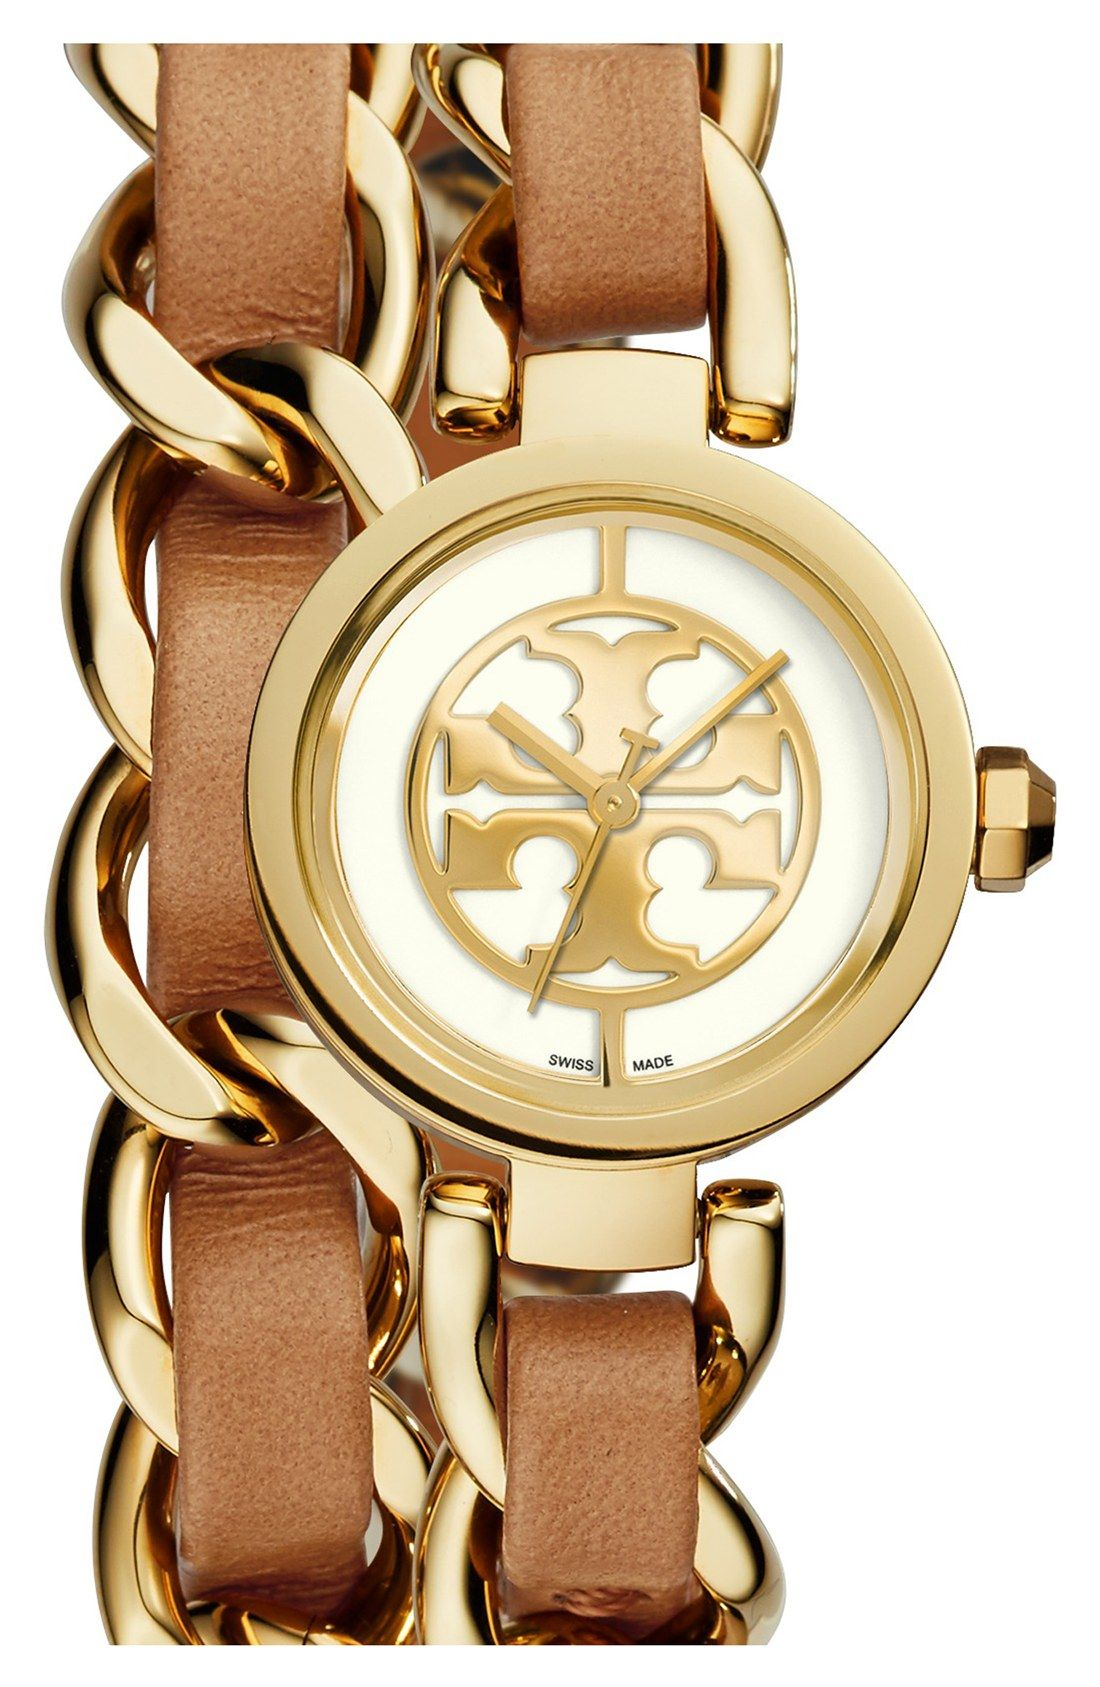 62305ca08 Crushing on this gold Tory Burch watch with a double wrap chain for an  everyday watch.